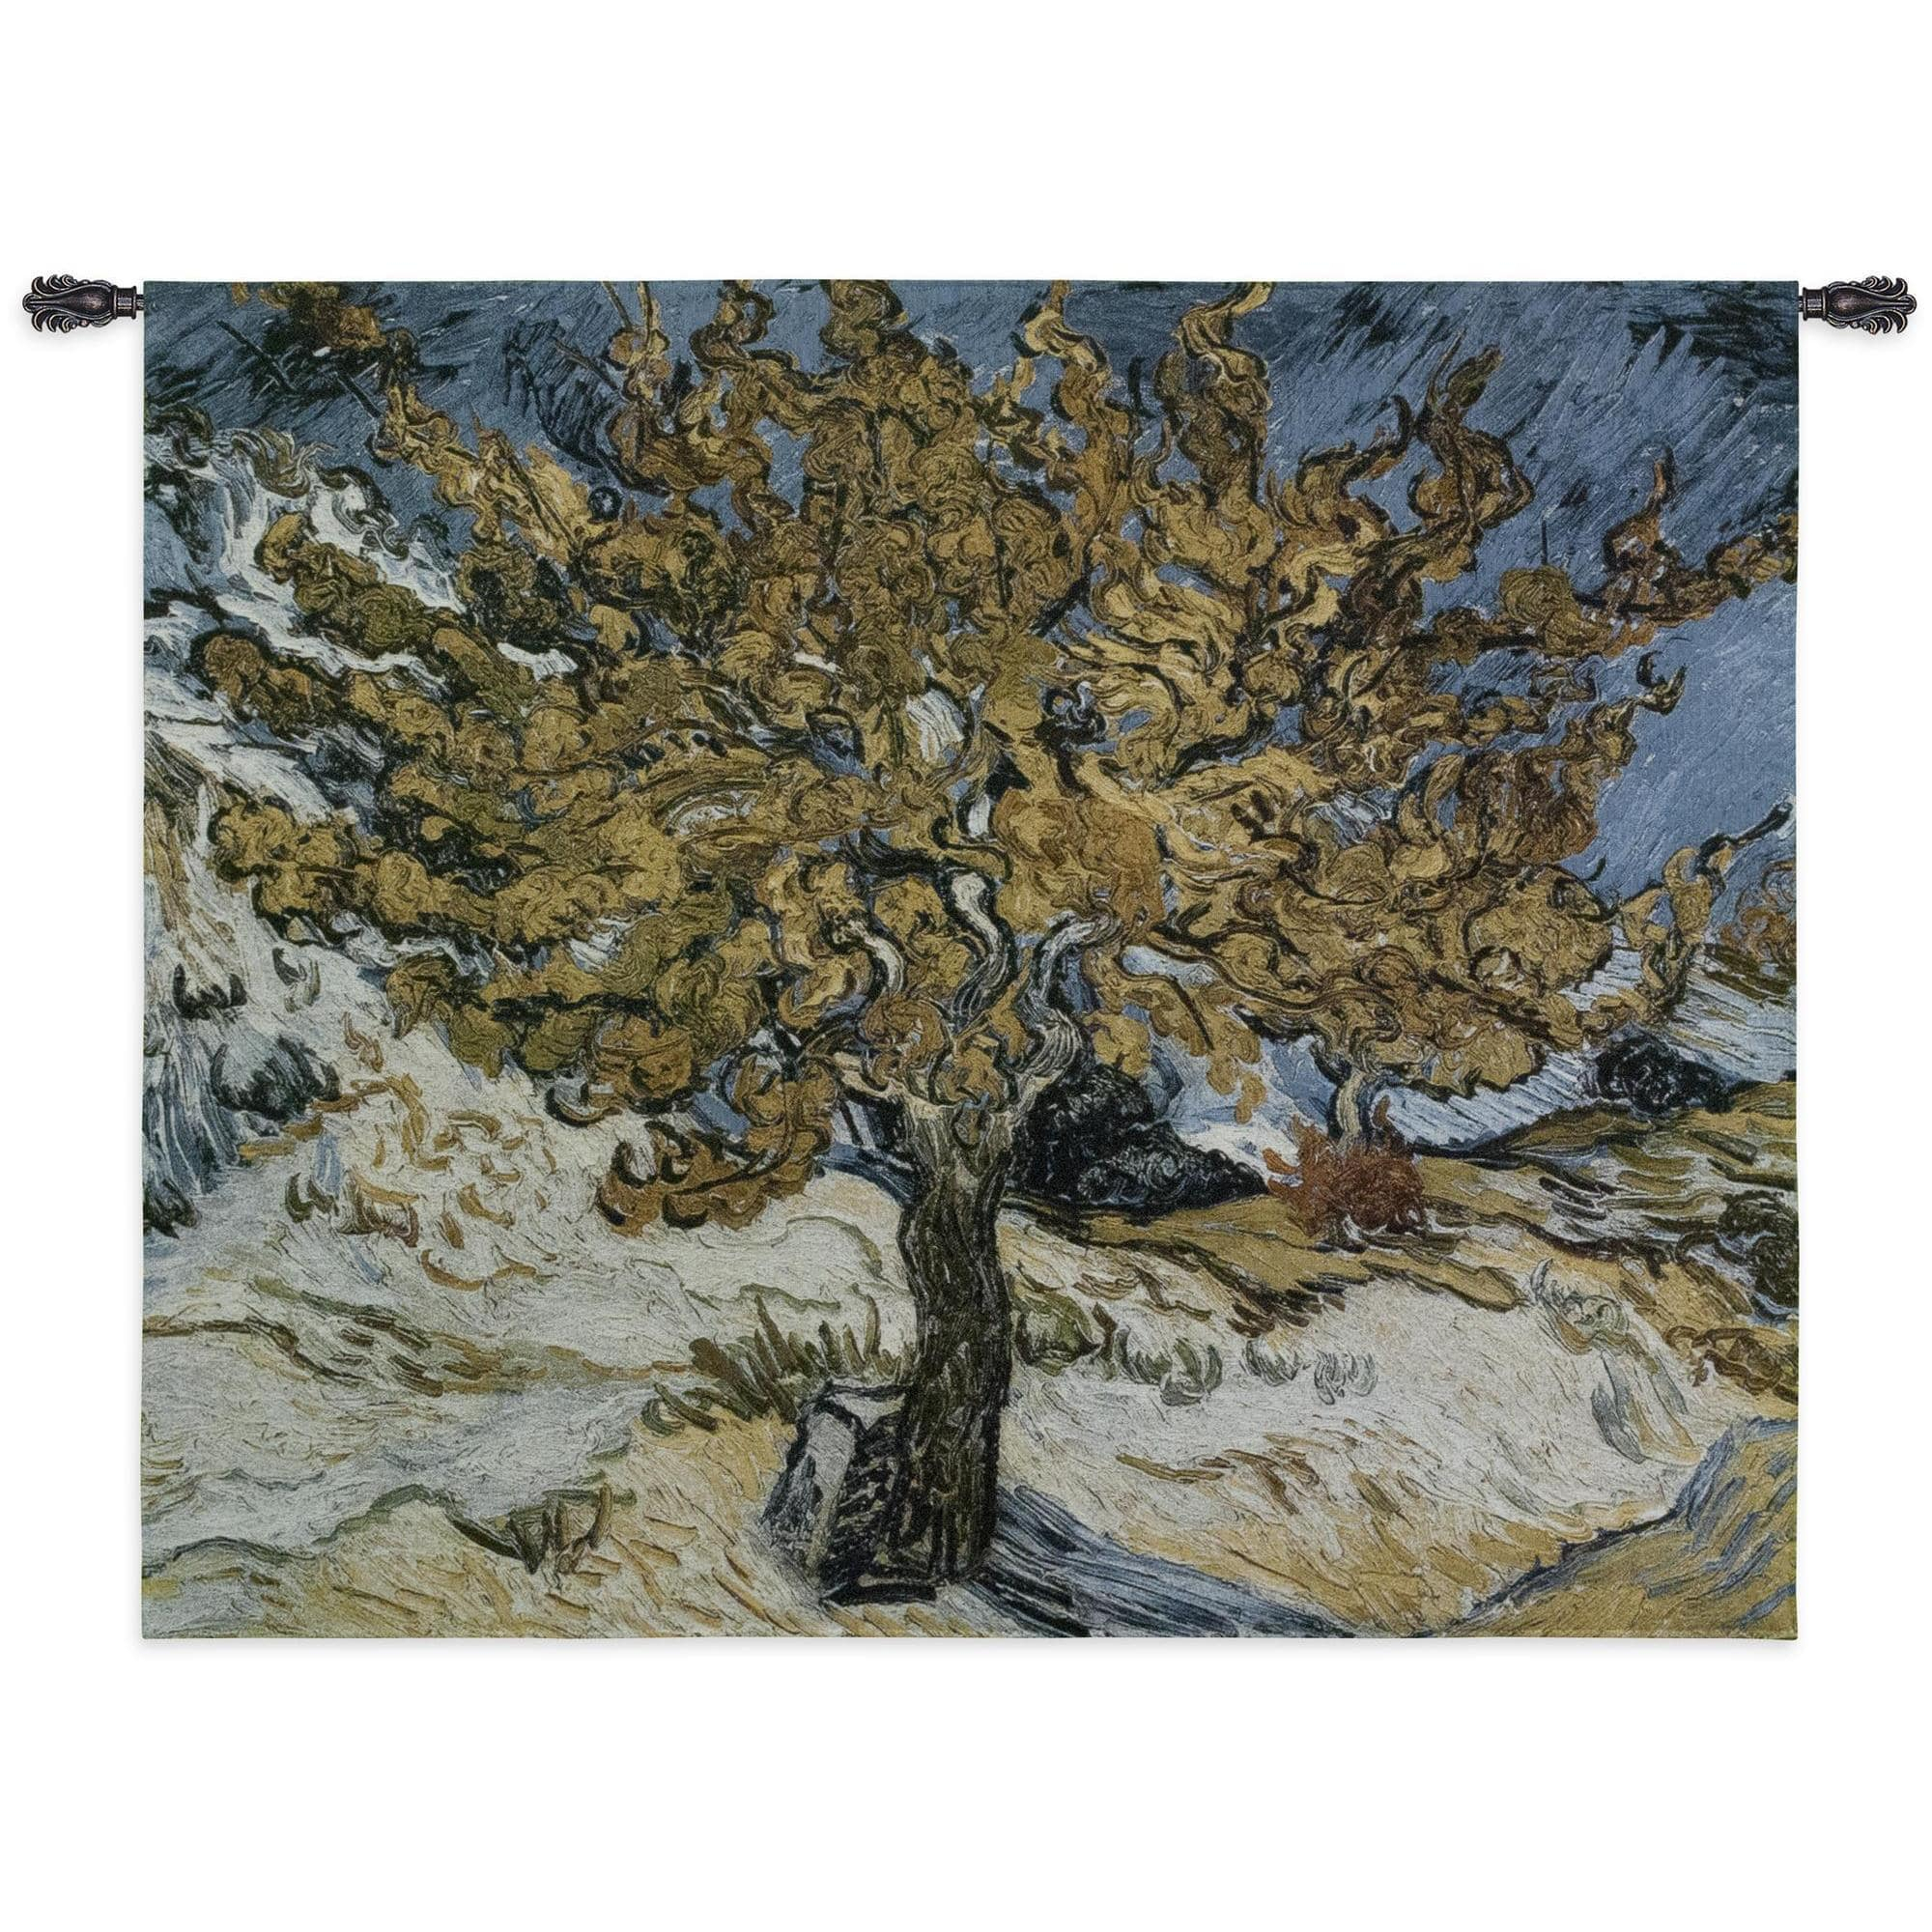 Finearttapestries 3085 Wh The Mulberry Tree Wall Tapestry Pertaining To 2017 Blended Fabric The Mulberry Tree – Van Gogh Wall Hangings (View 4 of 20)